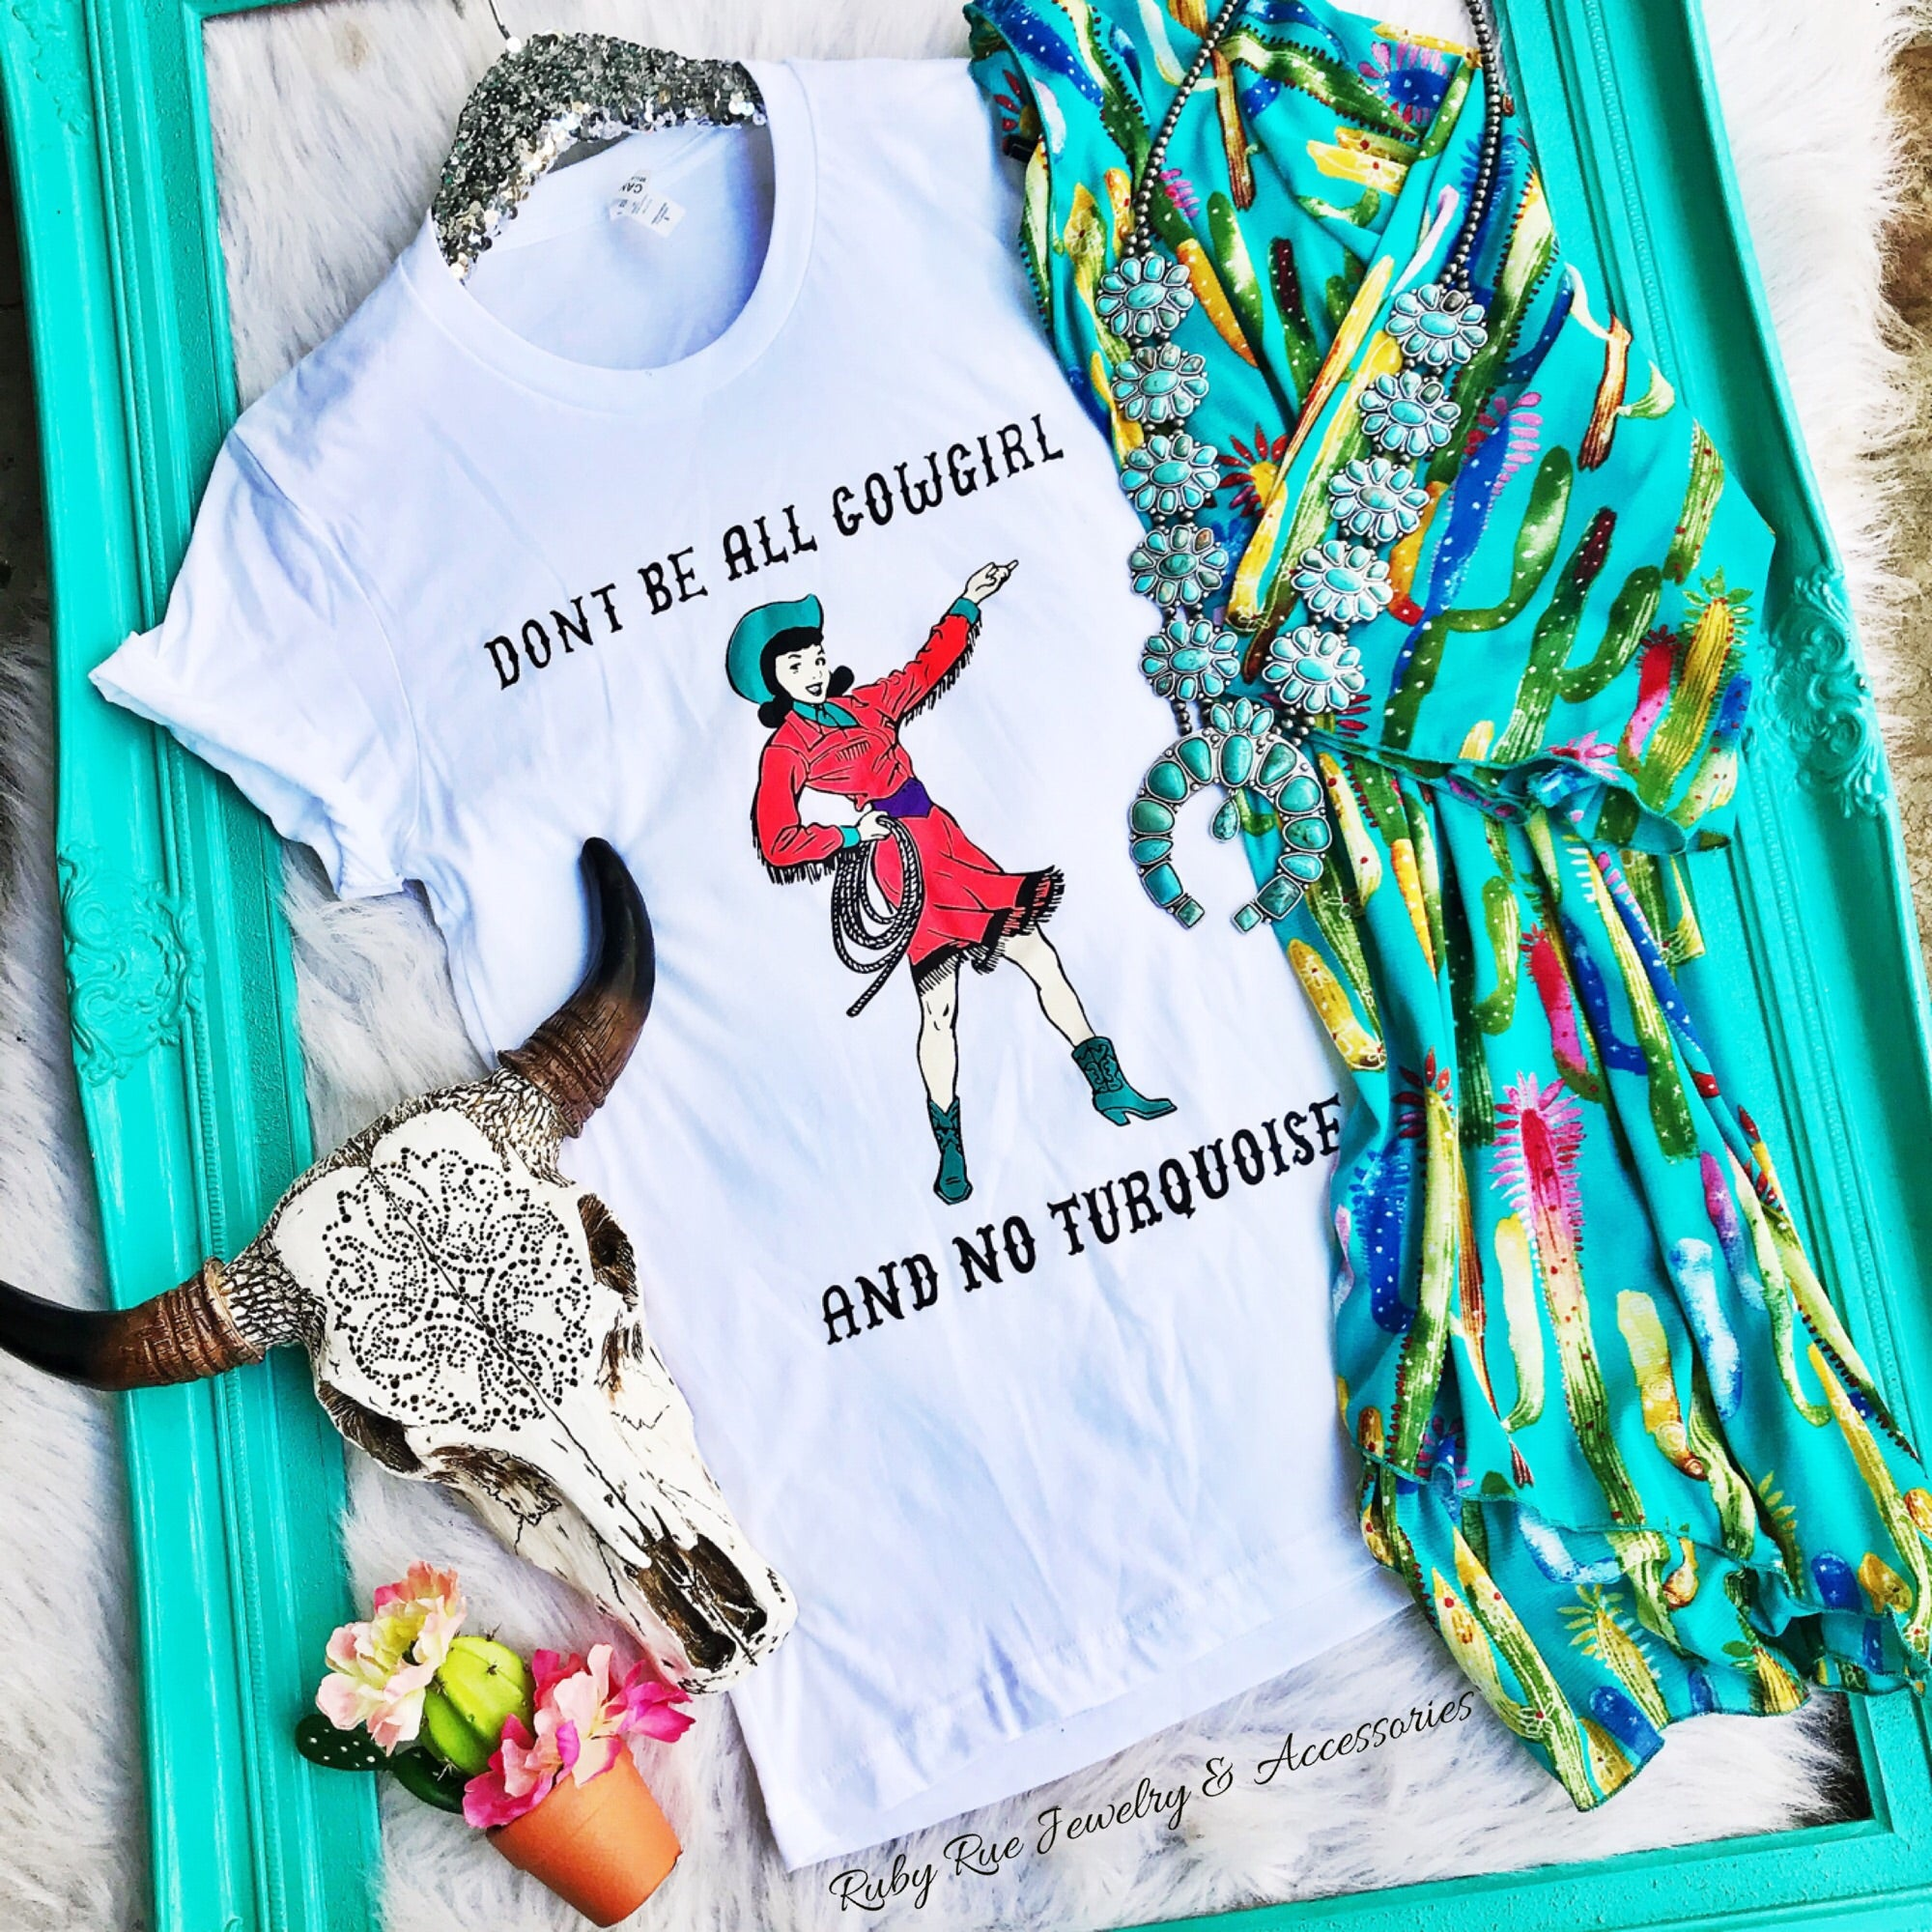 All Cowgirl & No Turquoise Tee - Ruby Rue Jewelry & Accessories